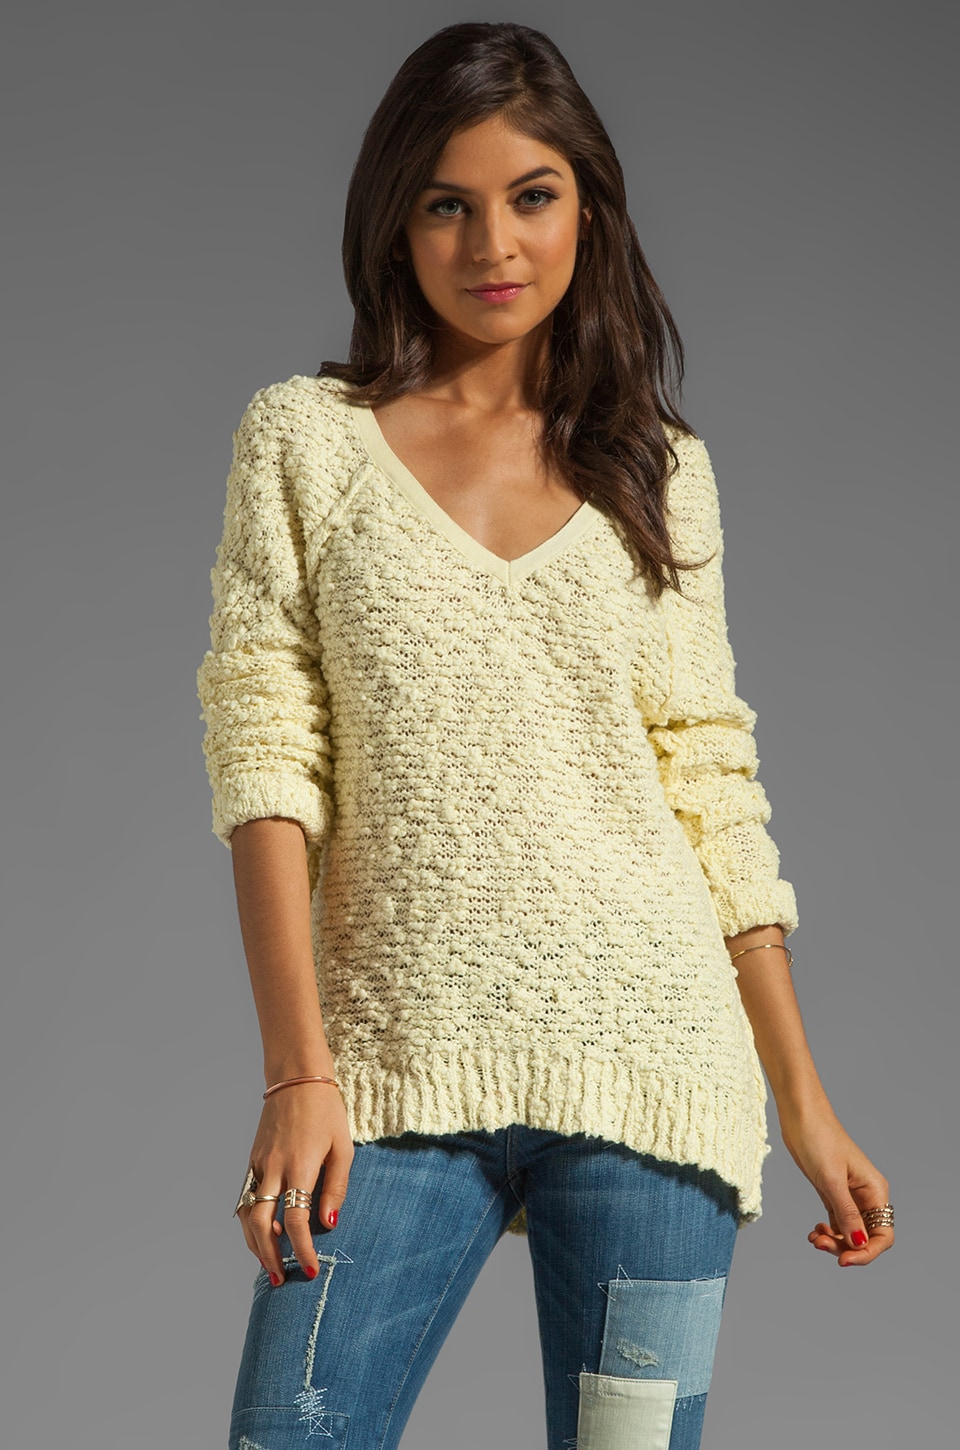 Free People Shaggy Bear Songbird Pullover in Lemon